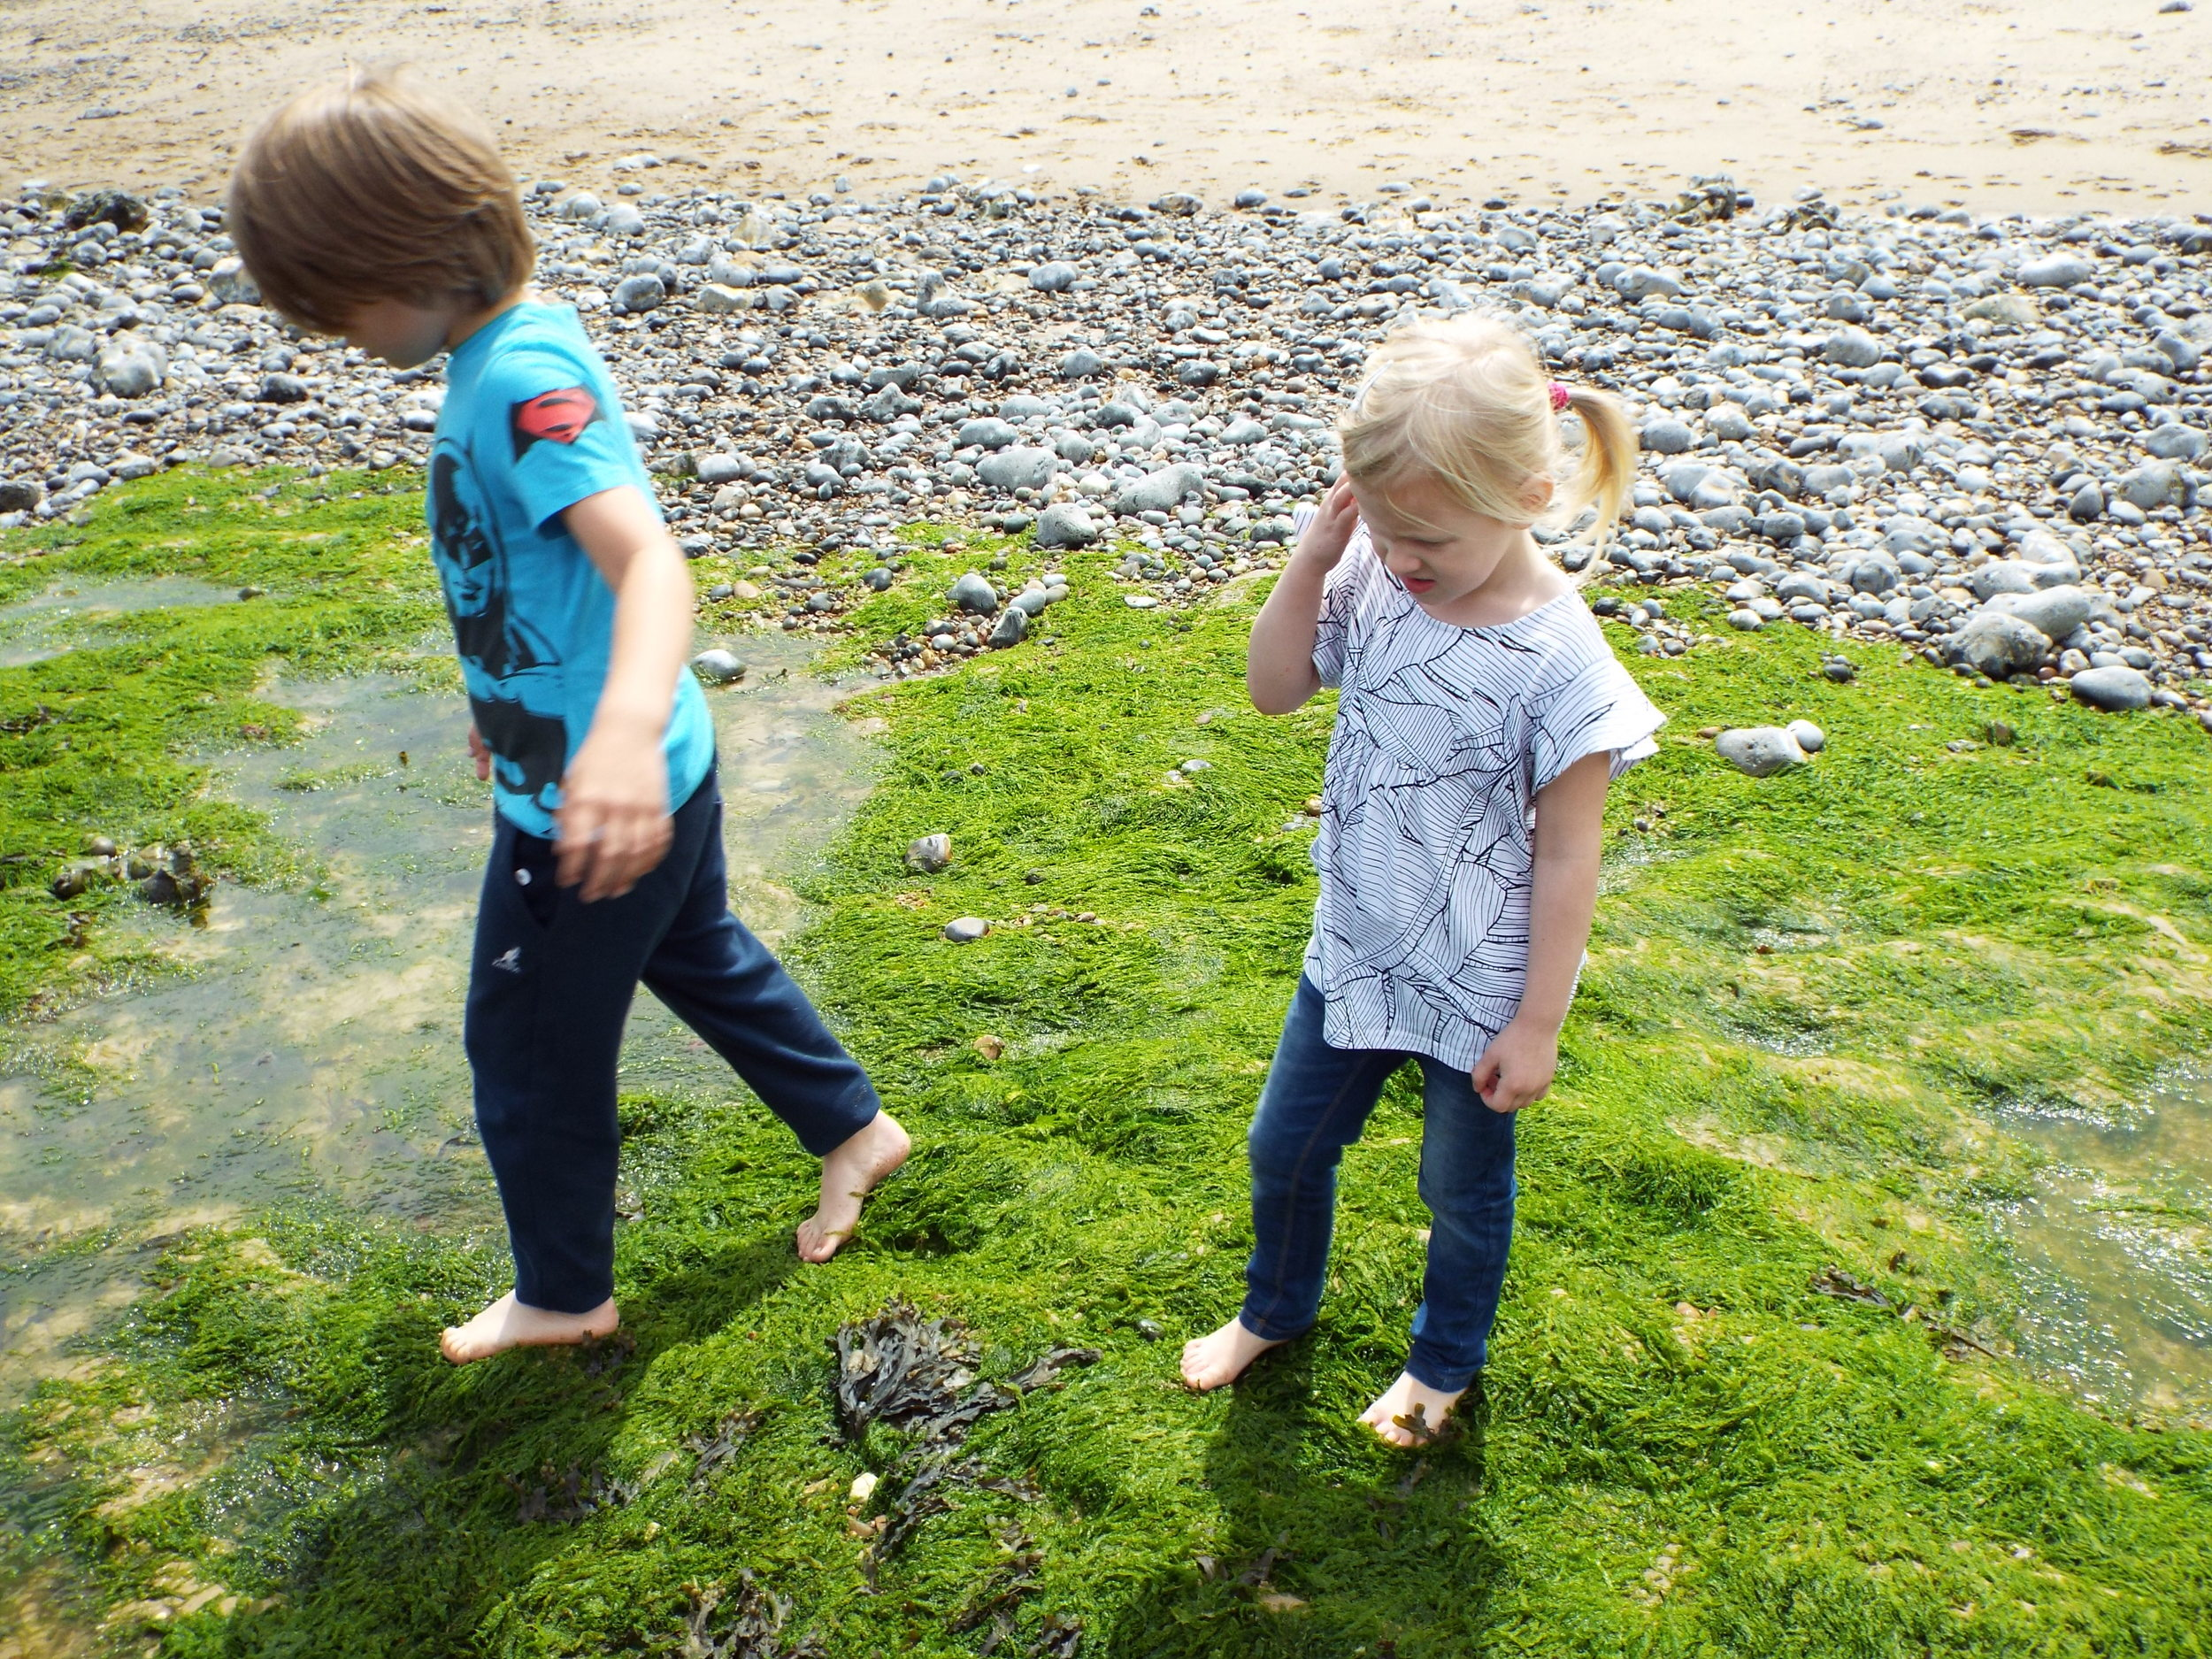 Haven Holidays want to encourage you to get outdoors this summer, thus, they have designed an activity guide full of exciting and fun ways to do just that. We were approached by Haven Holidays to choose one activity from their 2016 activity guide and to share our experience.